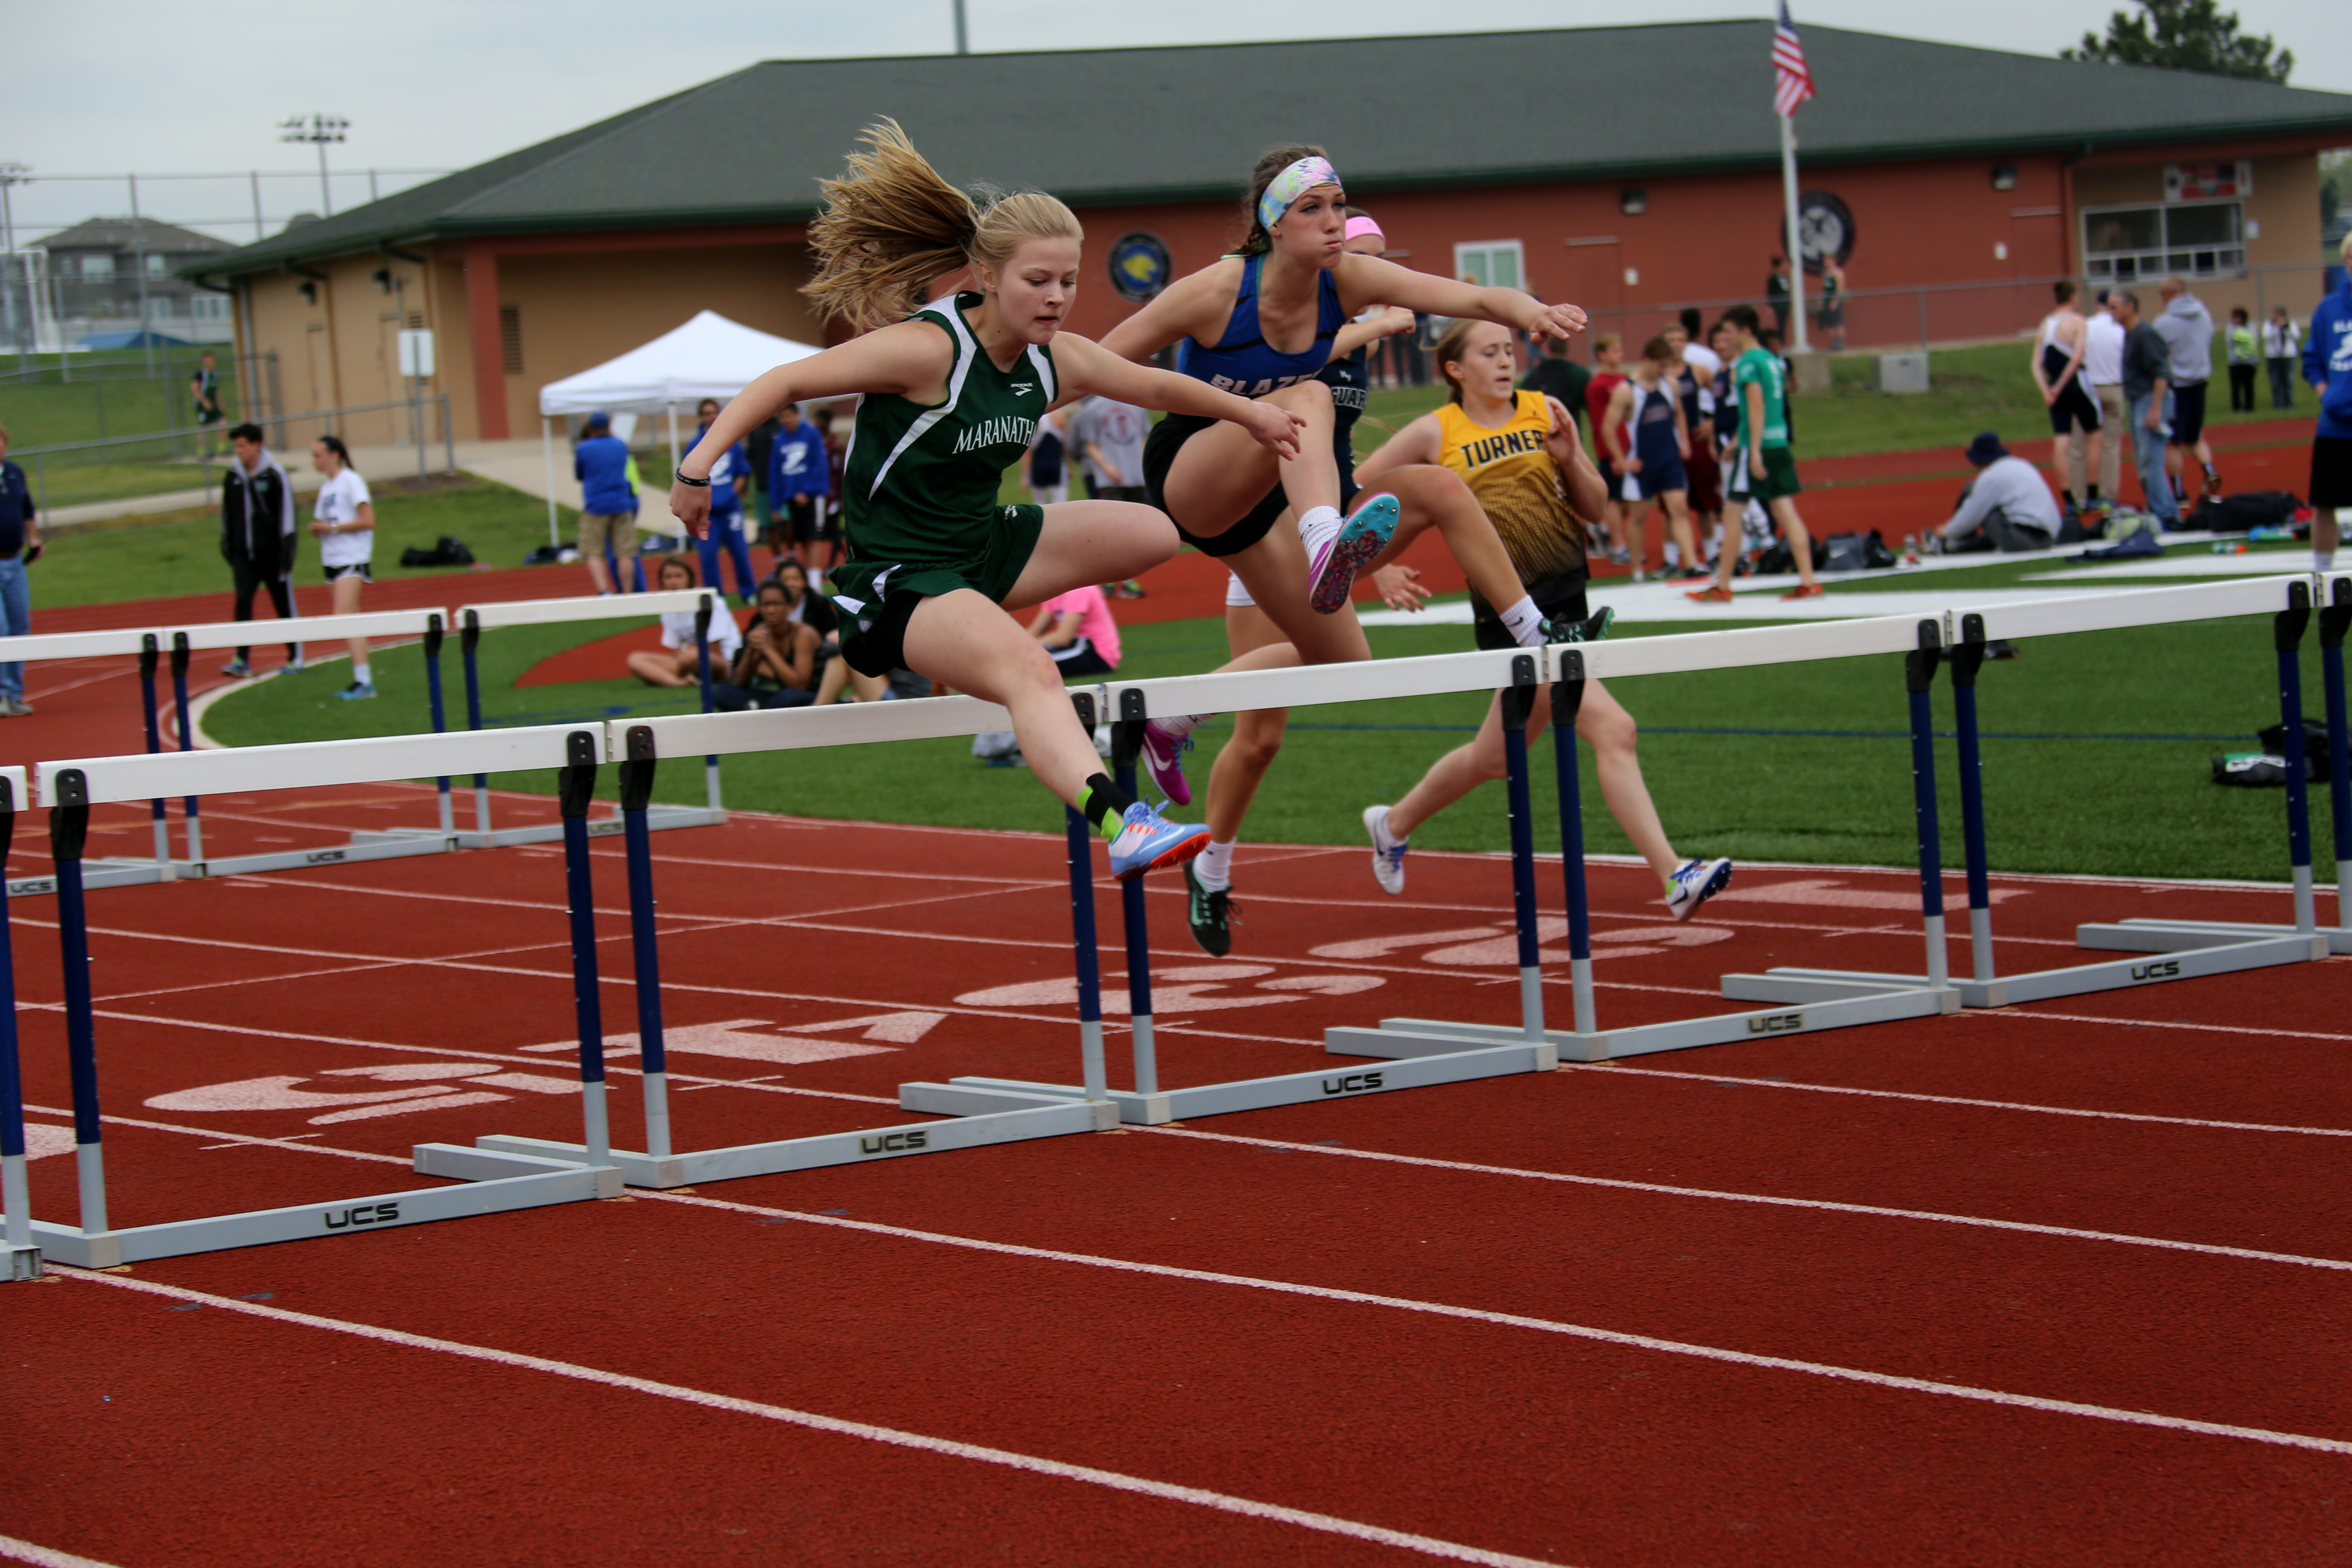 81 Obstacles For All Who Live A Life Of Athleticism